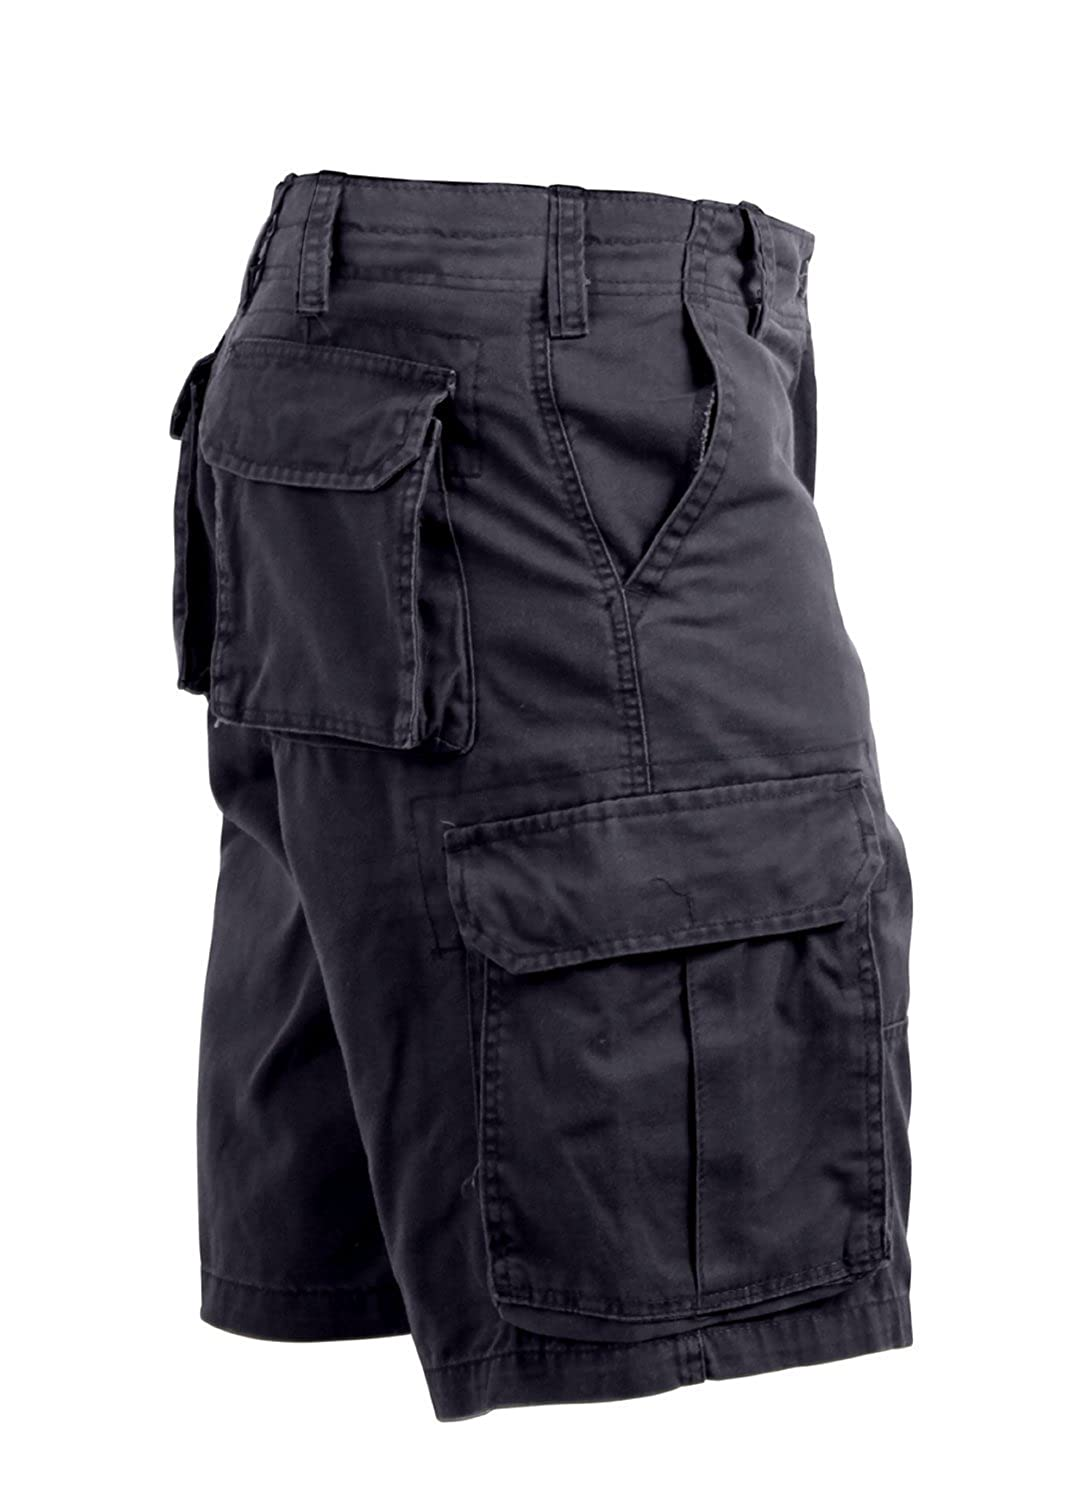 Rothco Ultra Force Vintage Black Cargo Shorts